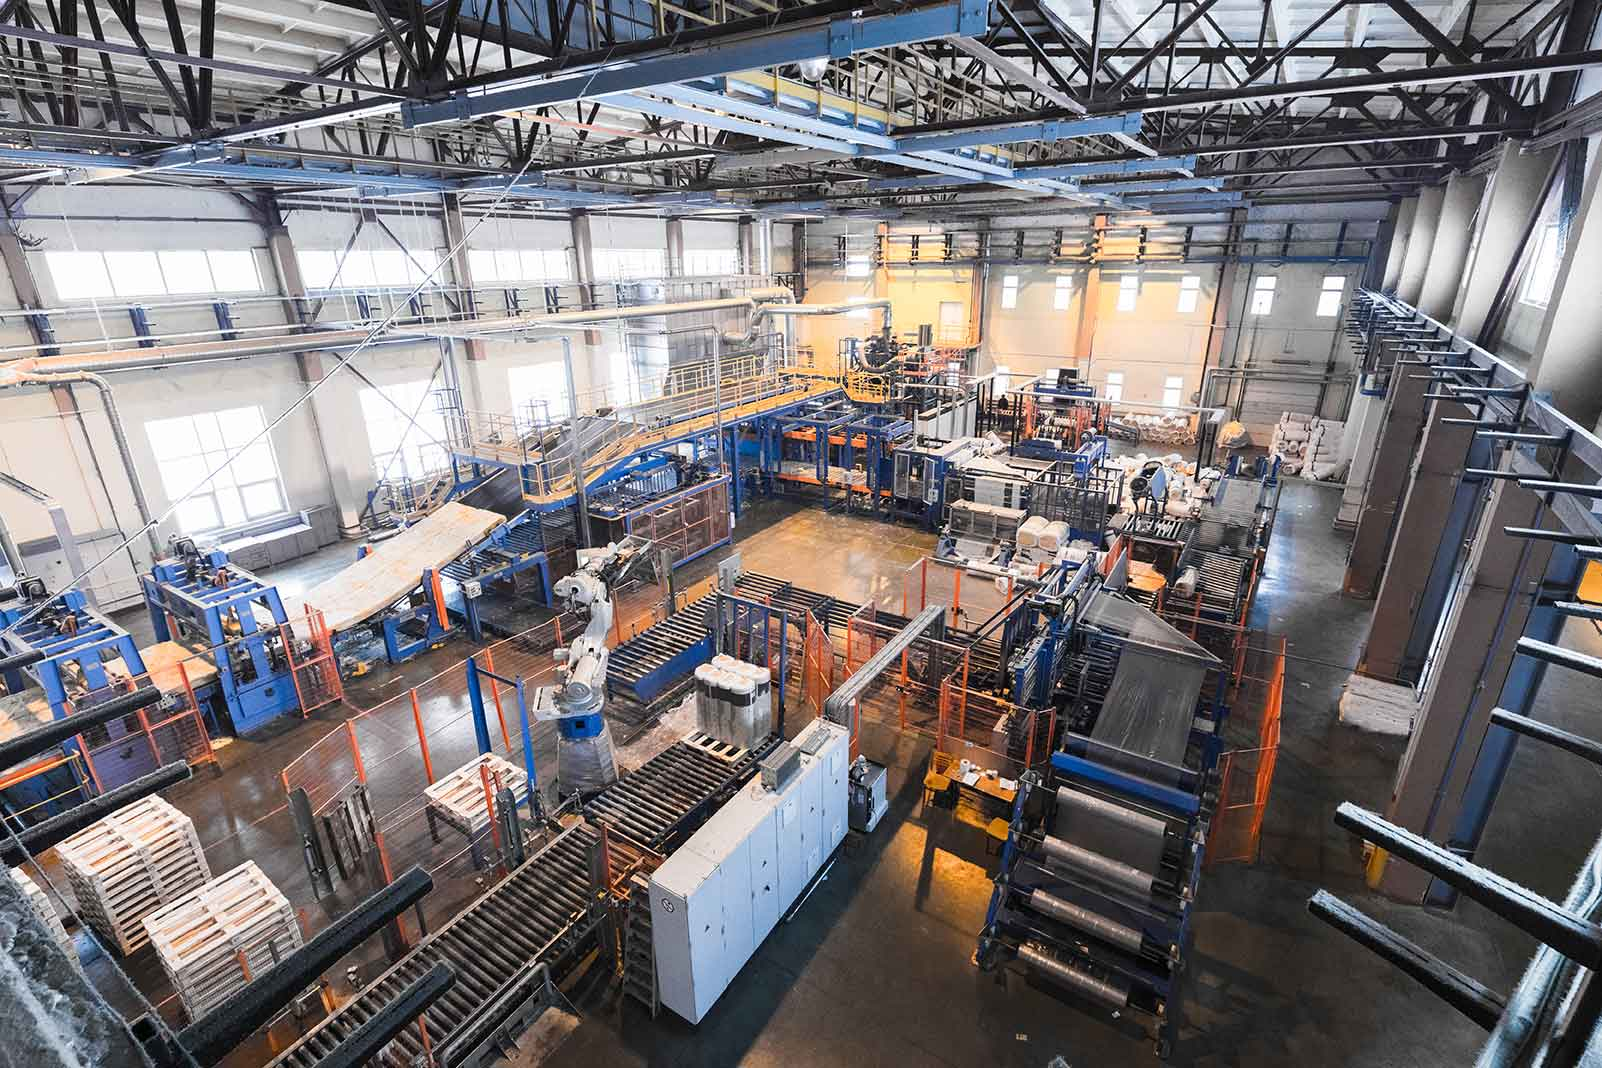 Manufacturing Plant Feasibility Study For Global Construction Materials Company - Asia Market Growth